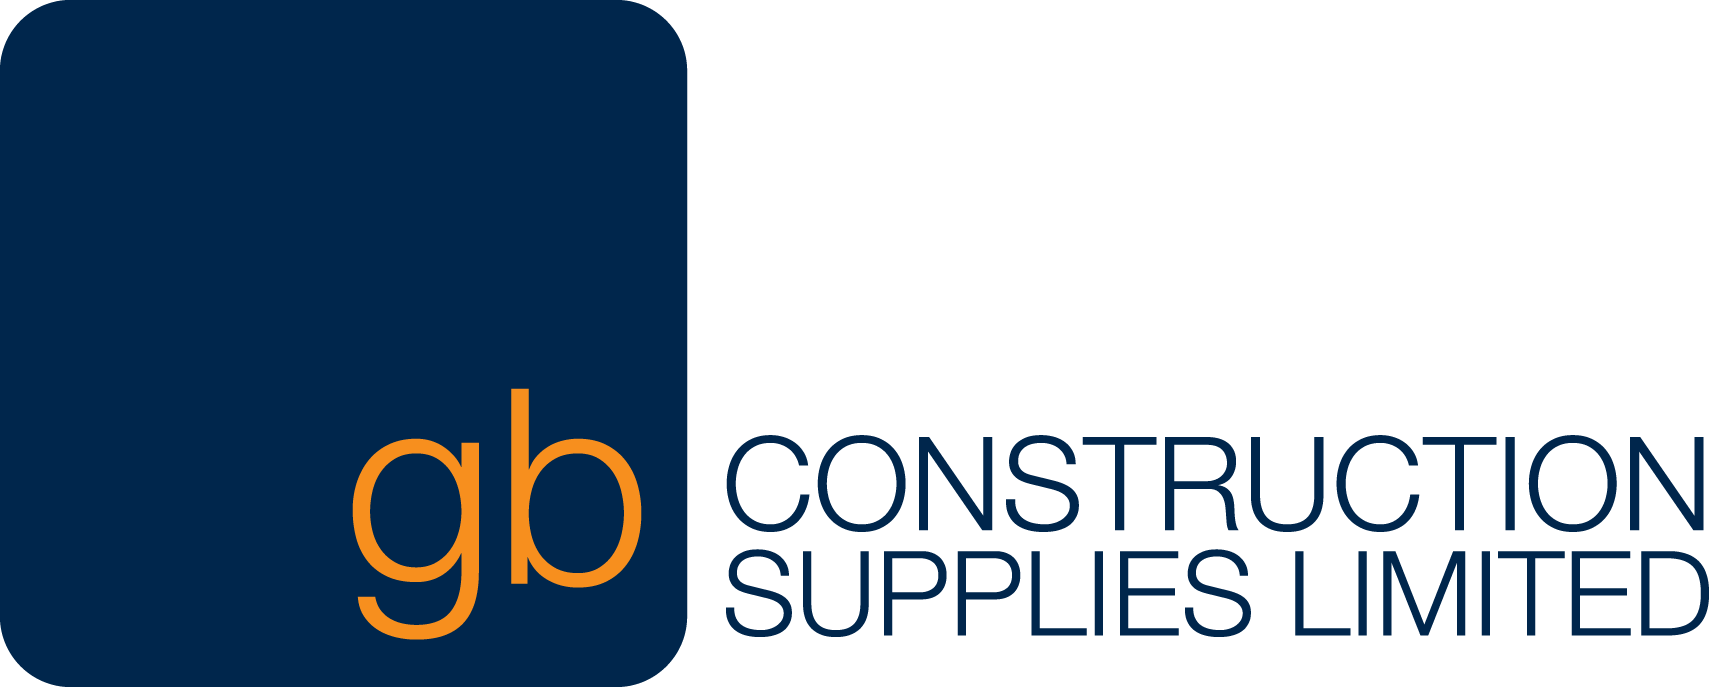 GB-Construction-Supplies